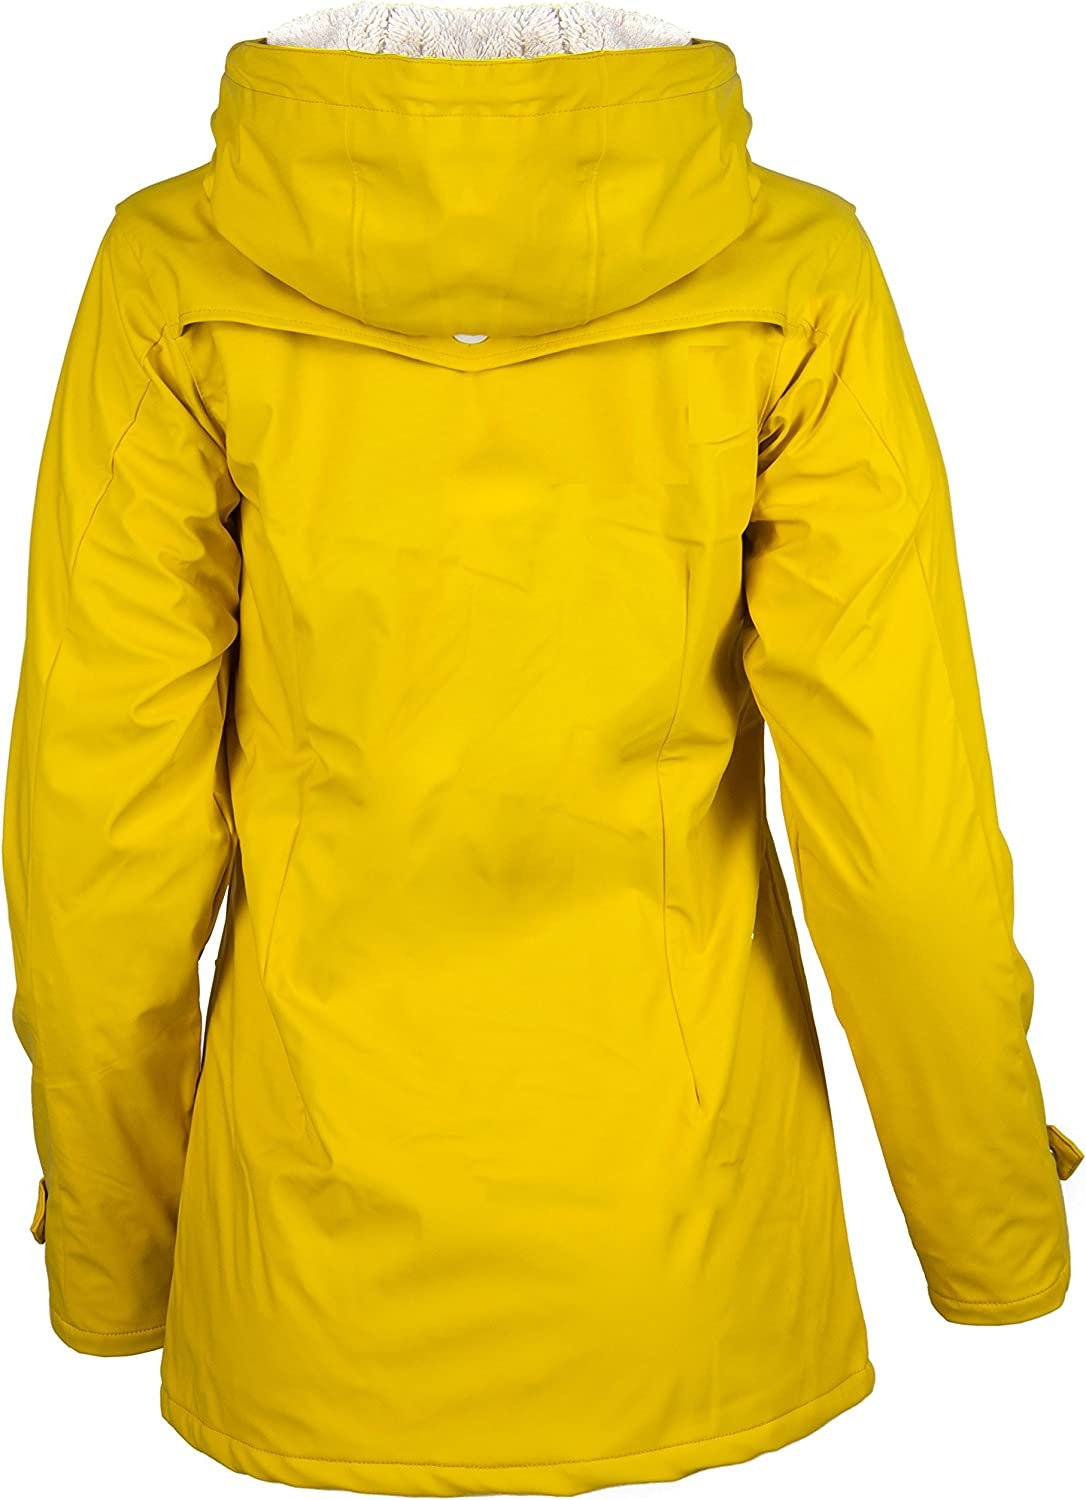 Derbe Damen Jacke Peninsula Cozy Jacket yellow